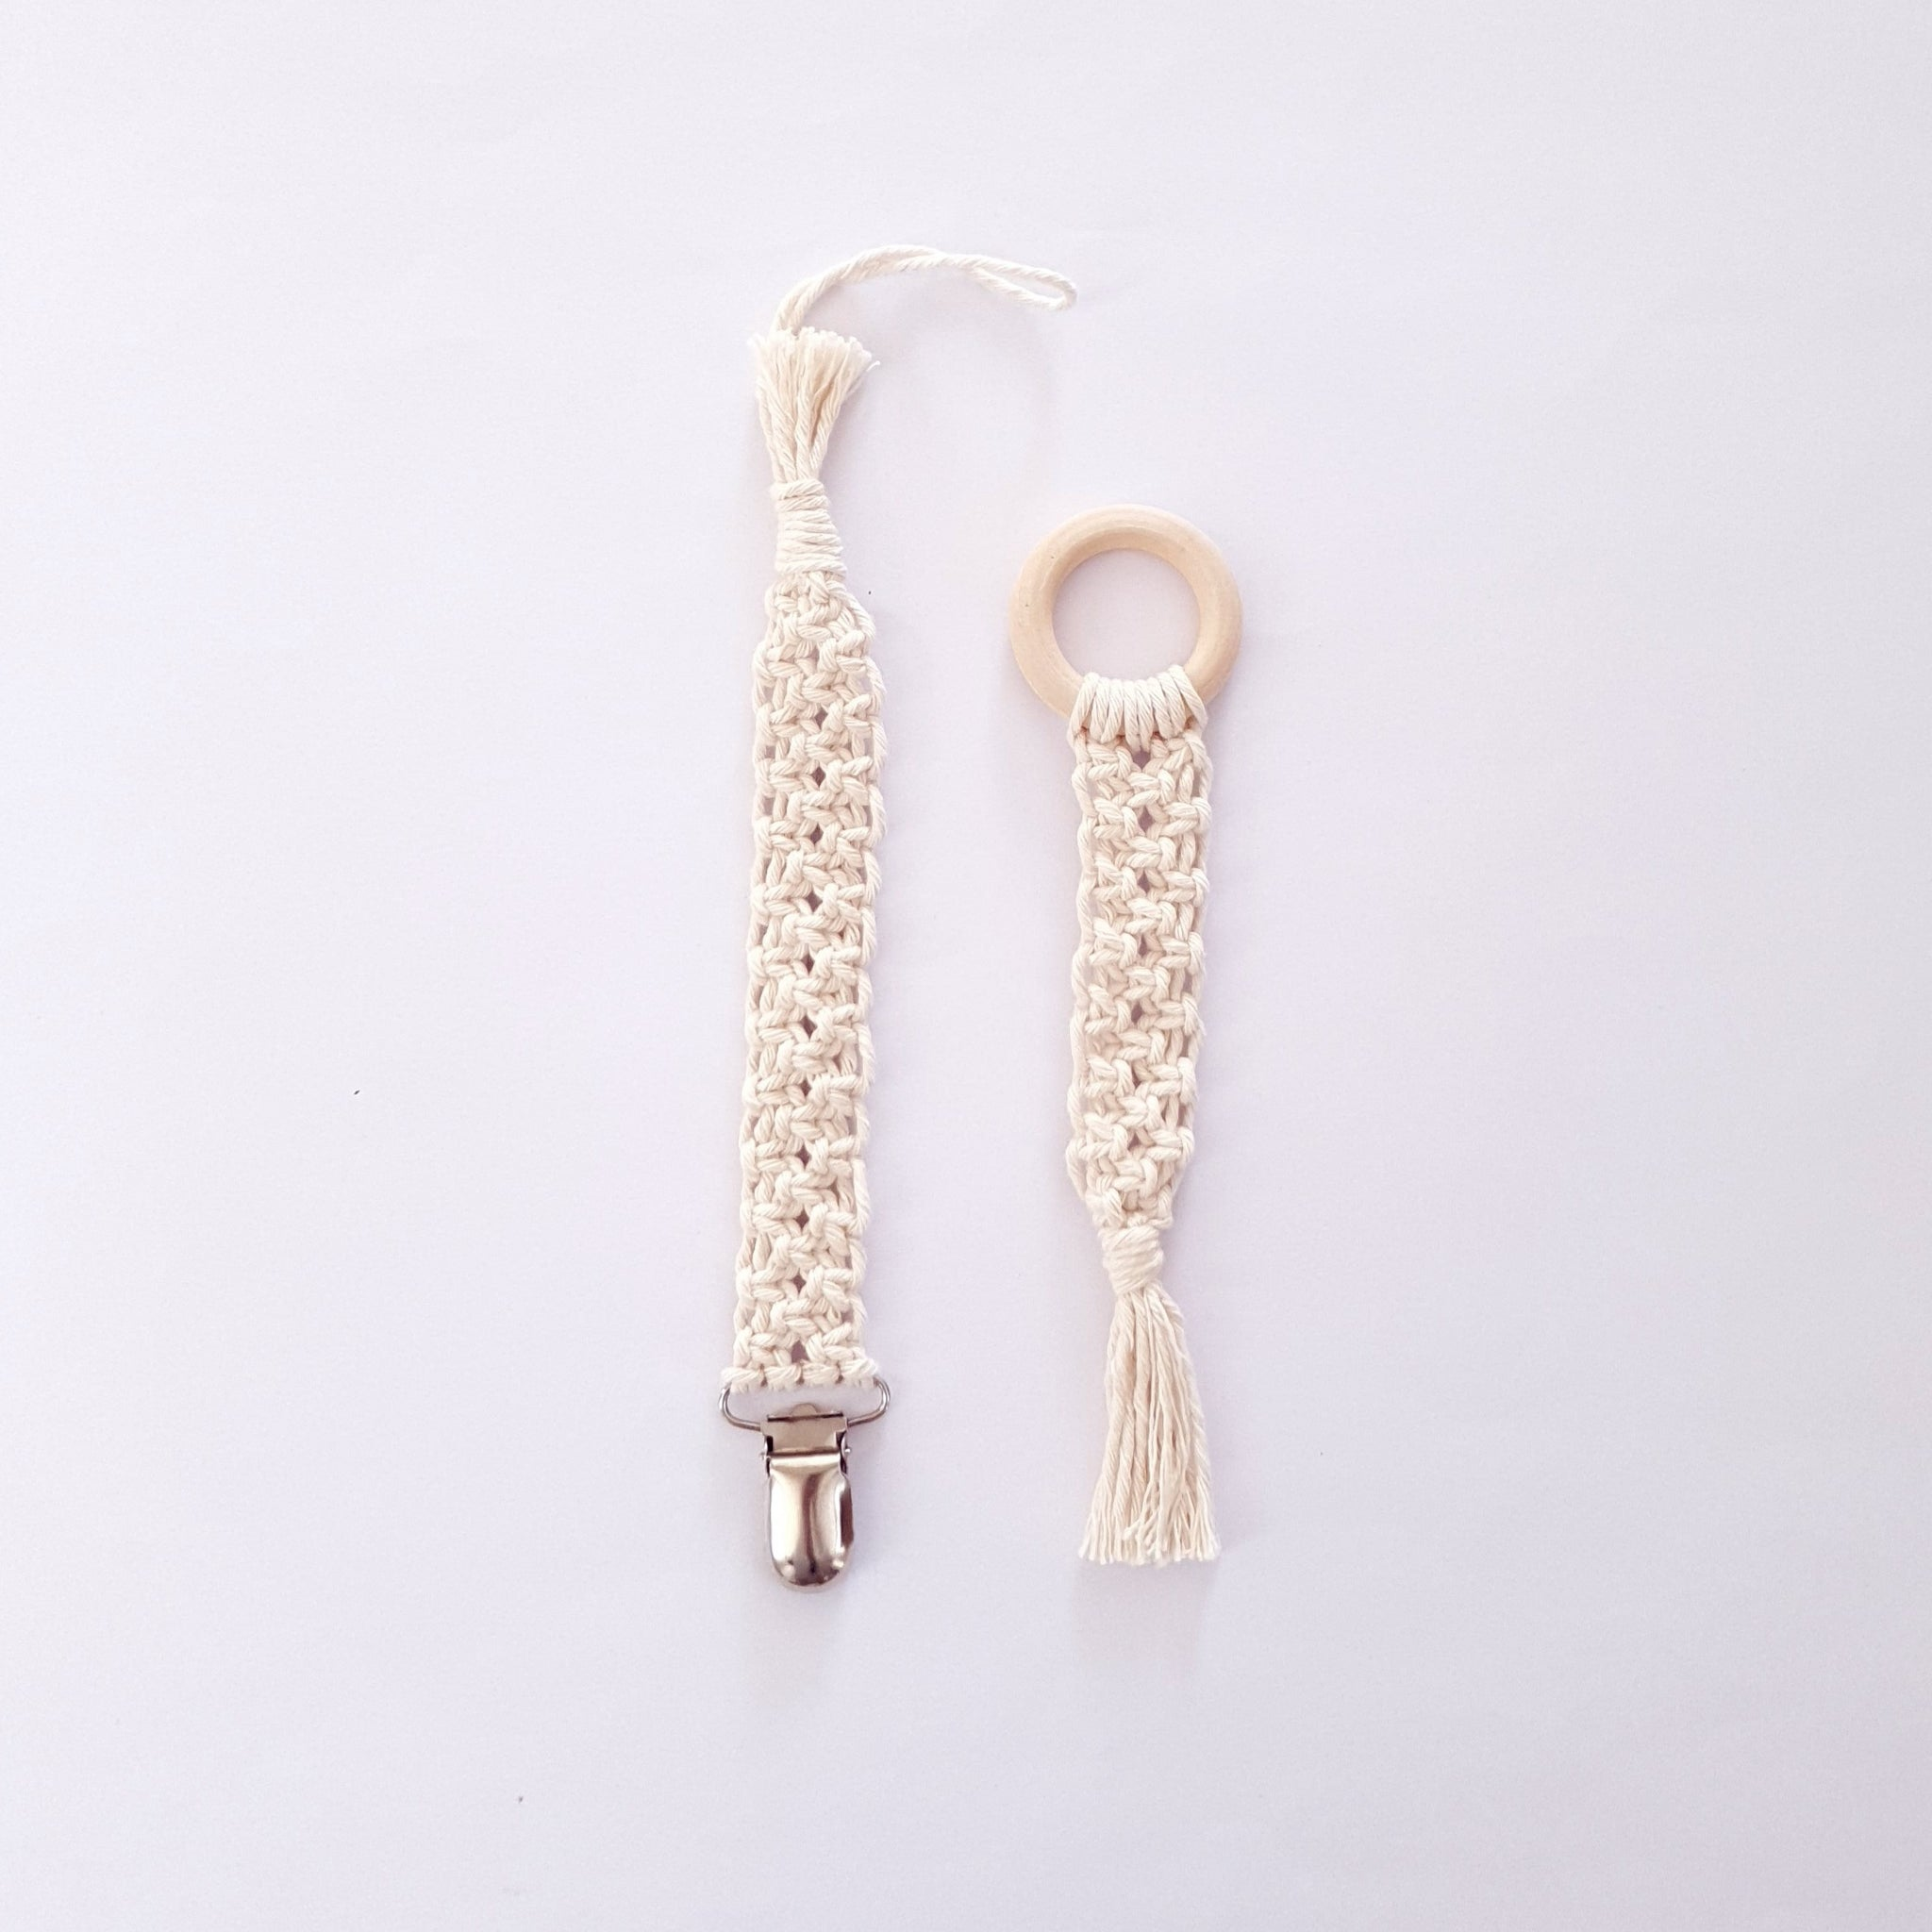 Macrame set - Natural